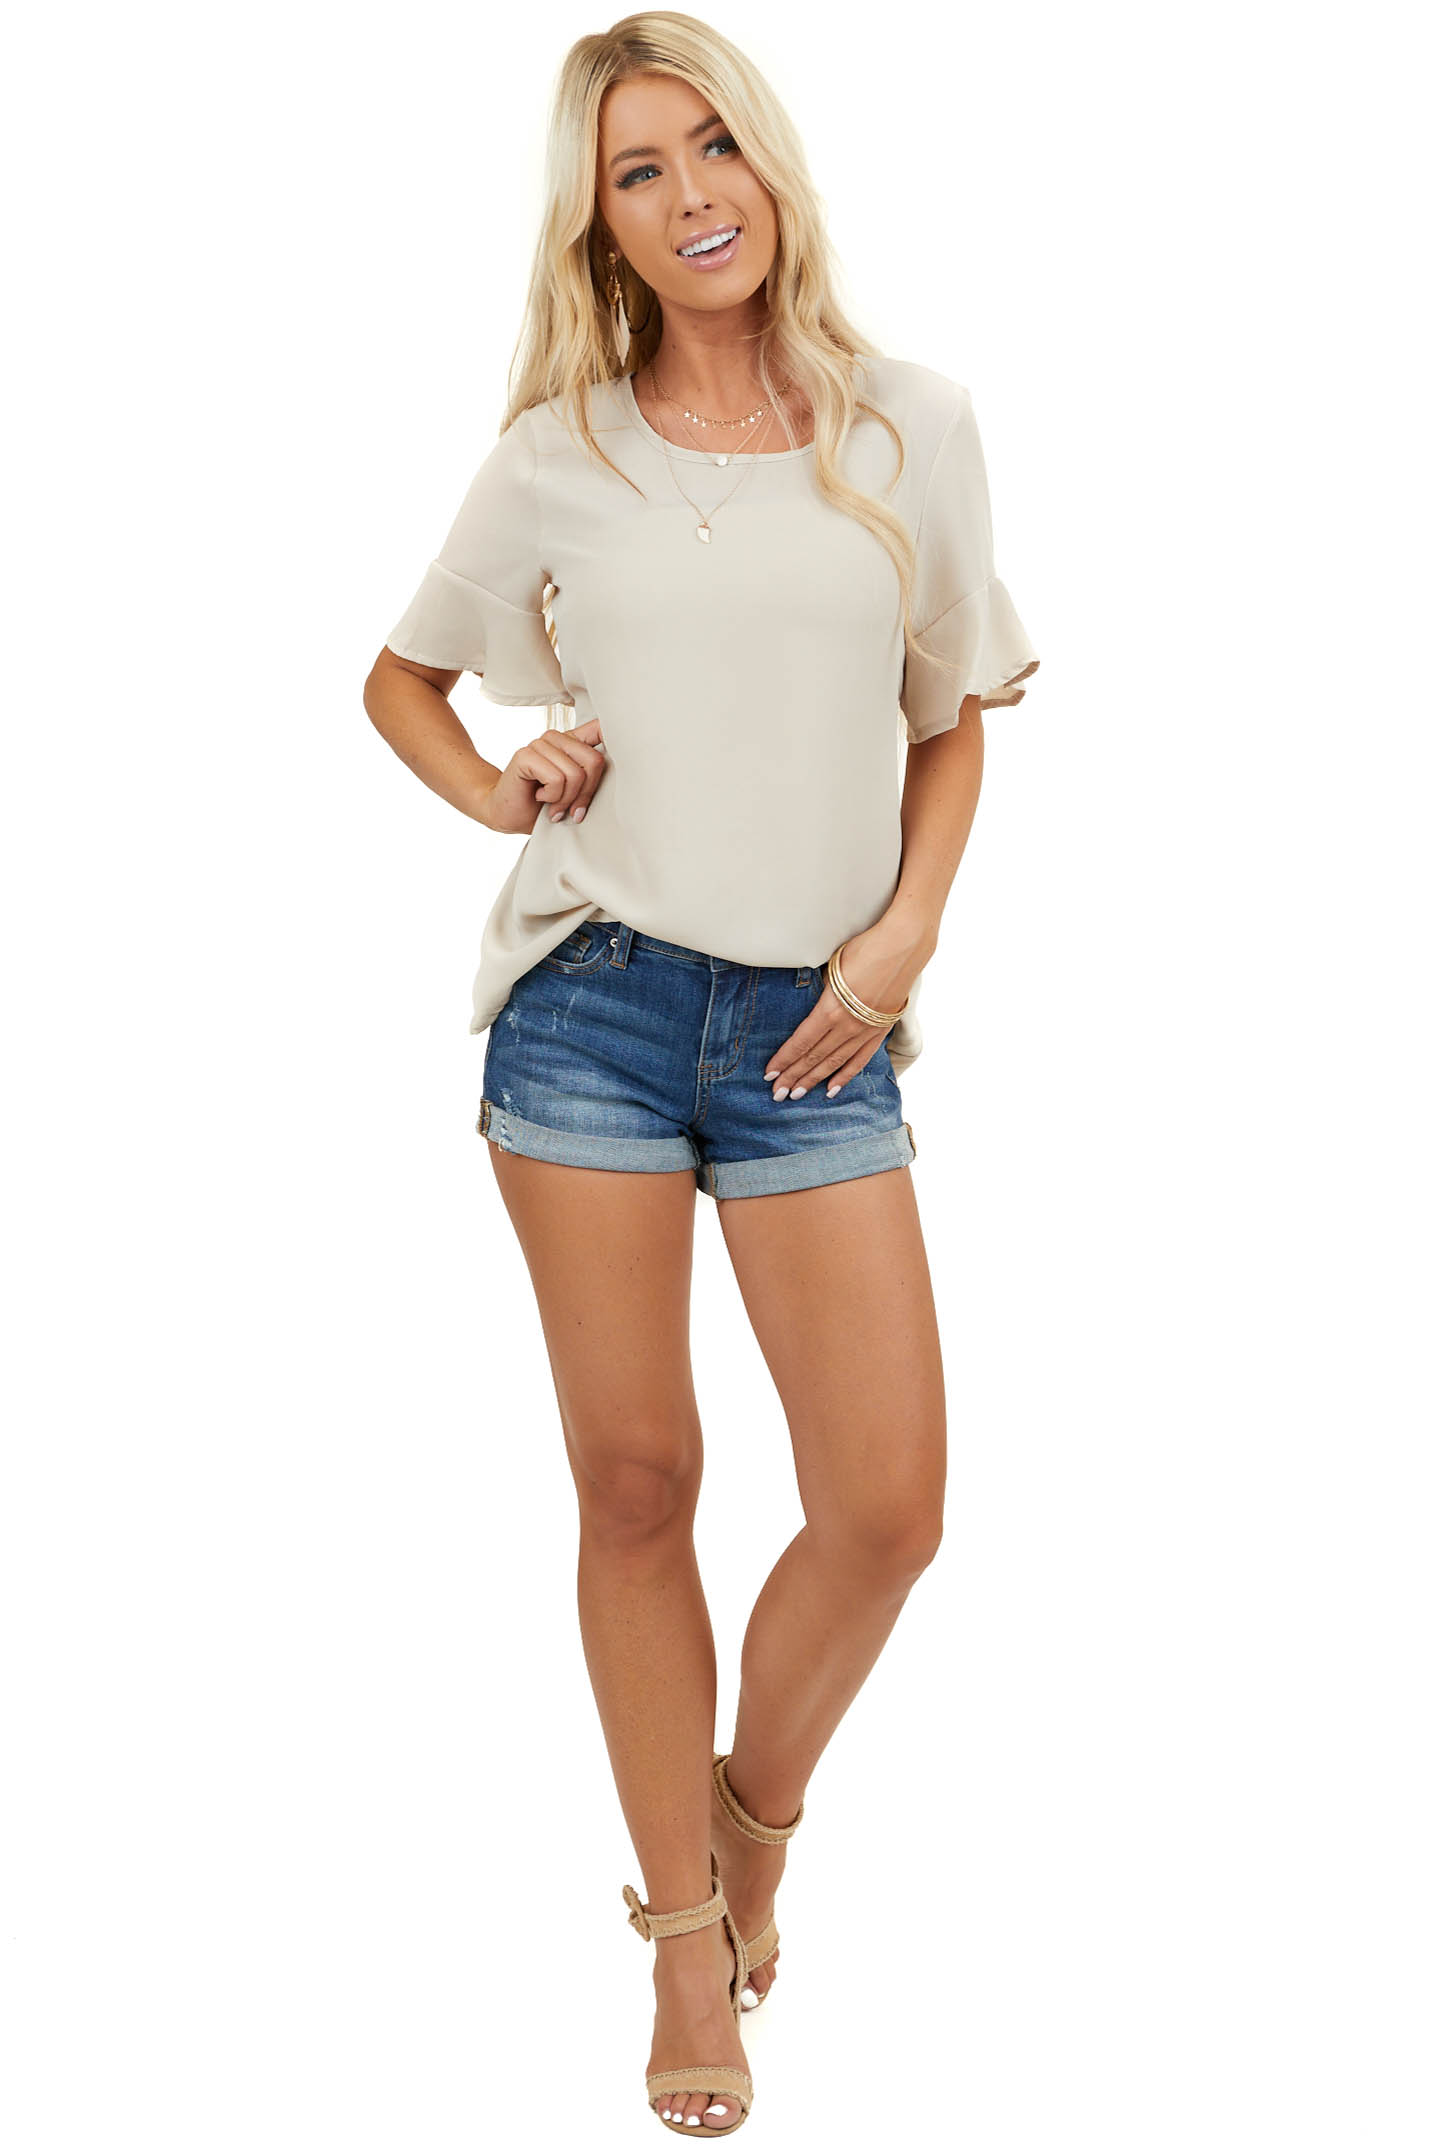 Oatmeal Round Neck Chiffon Top with Short Ruffle Sleeves